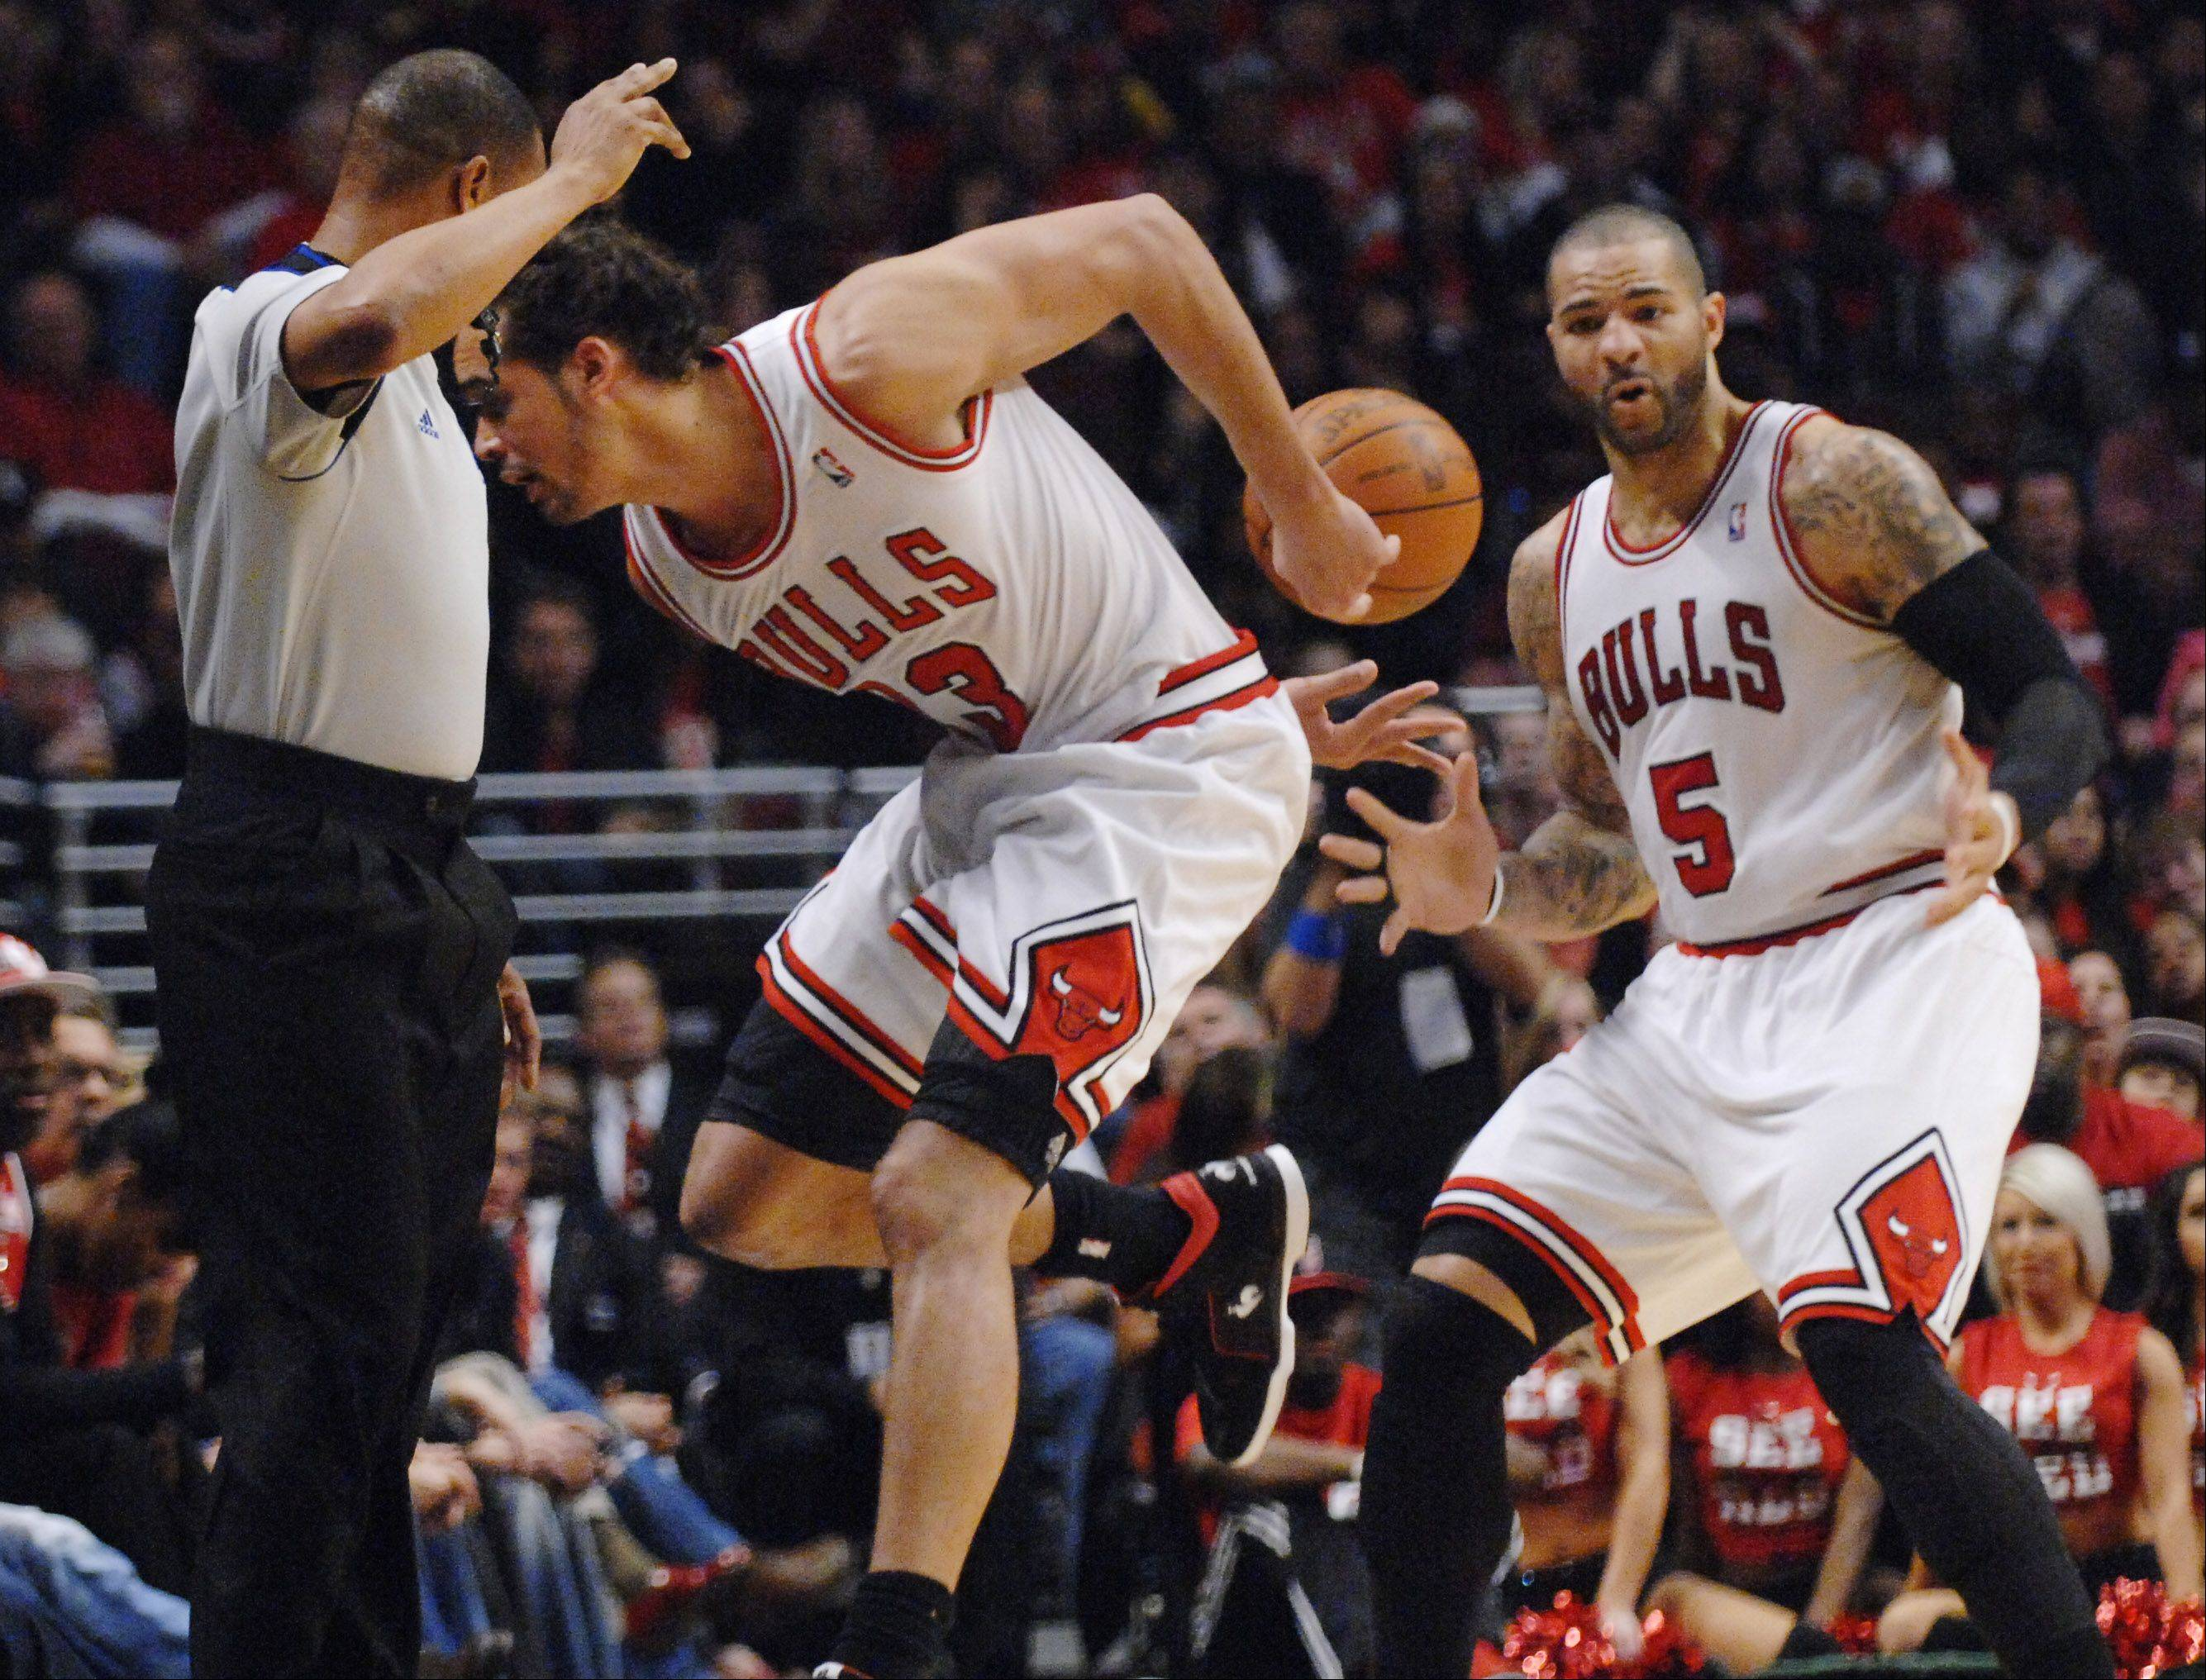 Chicago Bulls center Joakim Noah saves the ball from going out of bounds and flips it to forward Carlos Boozer.